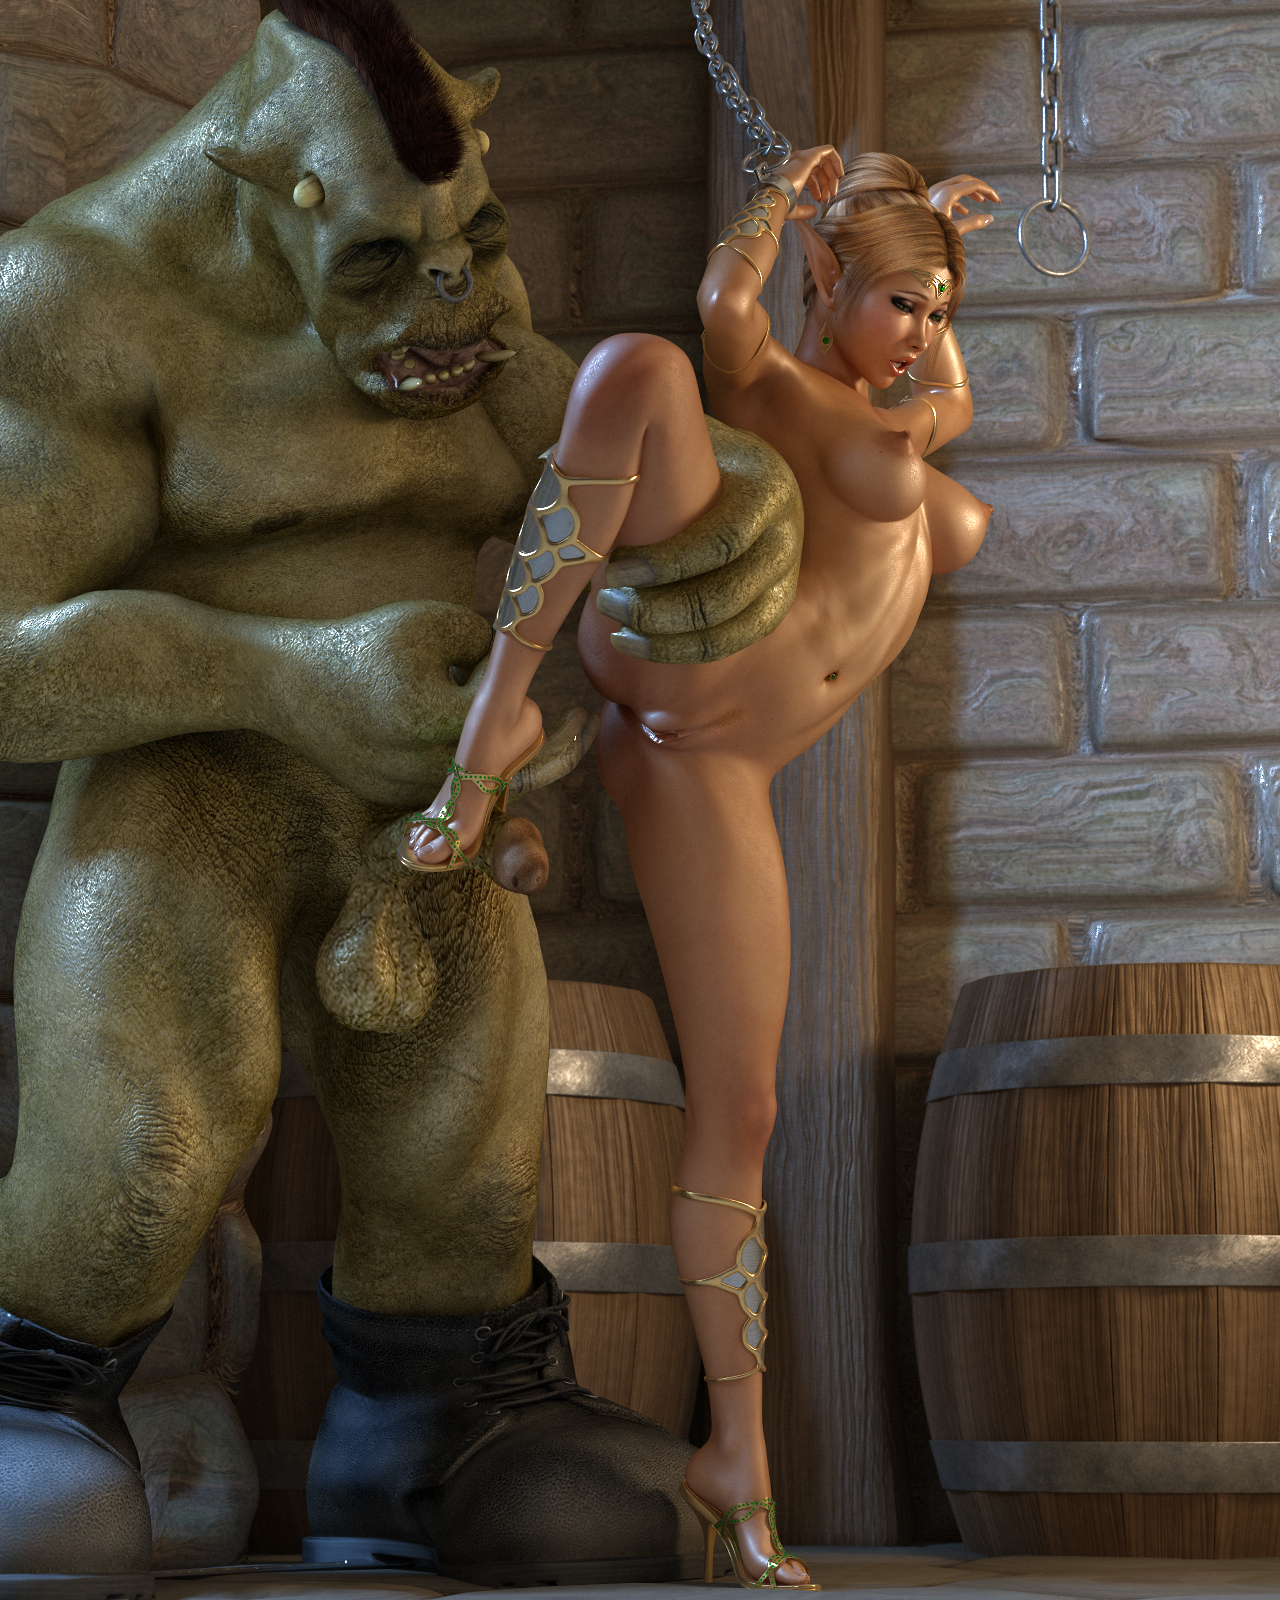 Free Sexy 3D Animation Porn free 3d cartoon monster porn videos